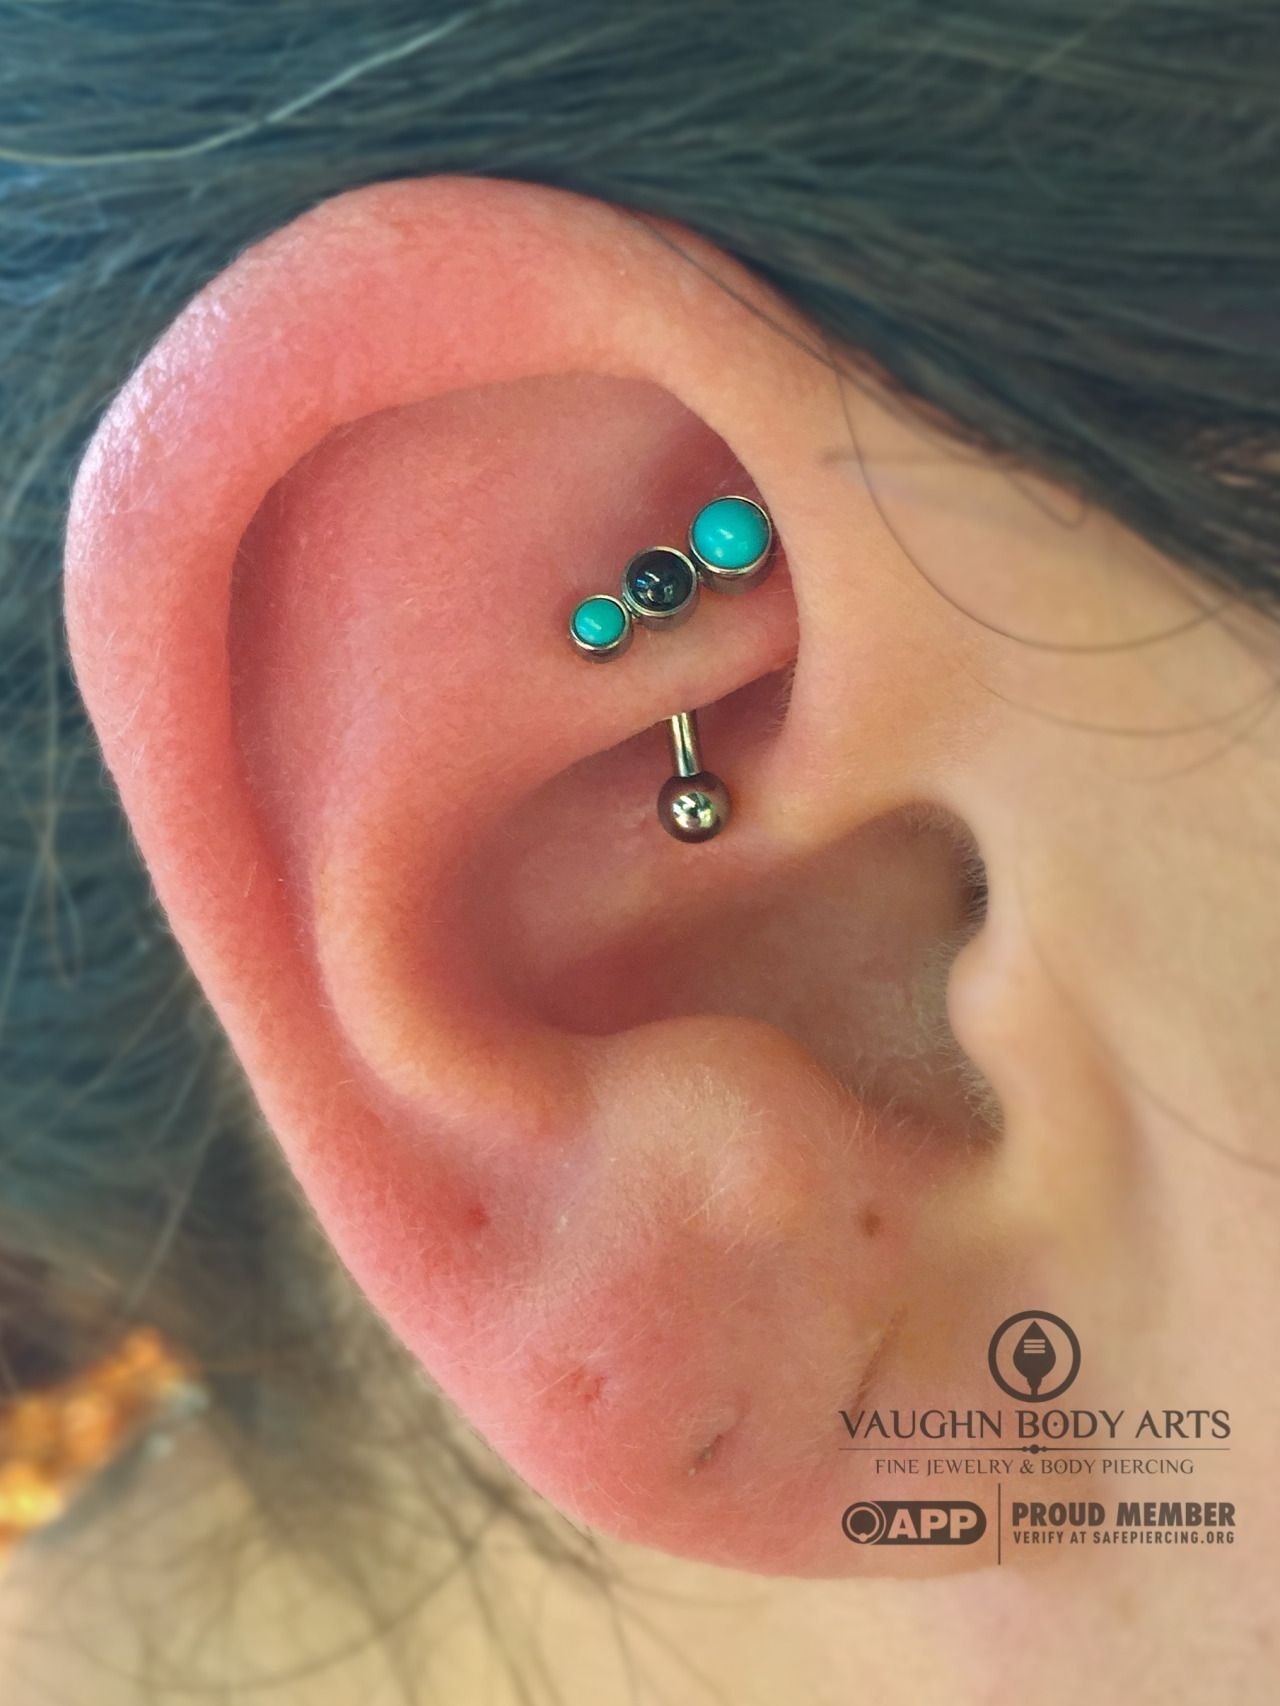 Body piercing areas  Nicolette had us pierce her rook and we are just loving the jewelry